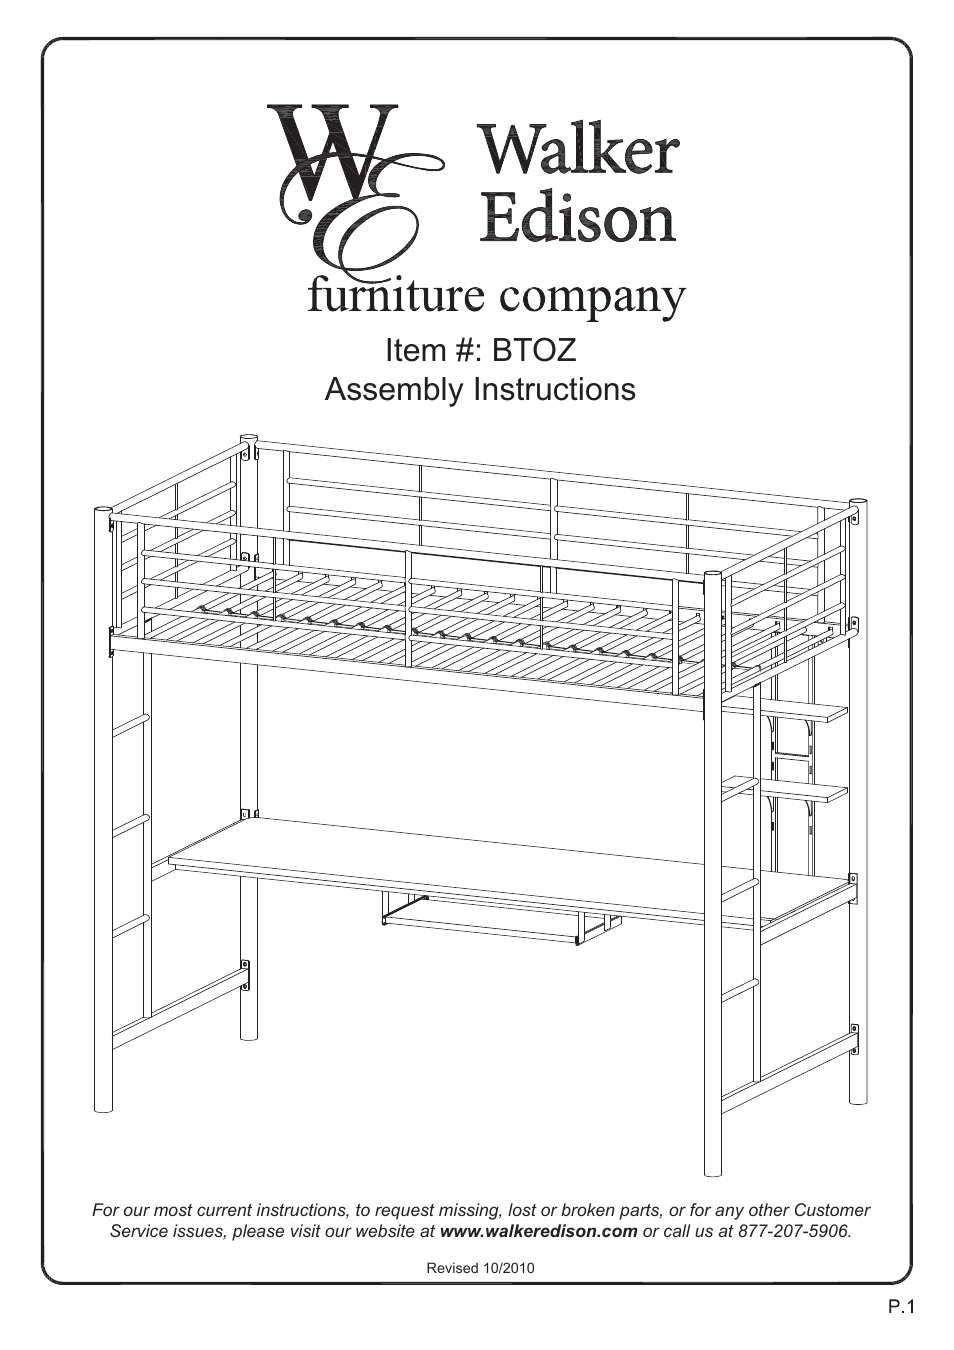 Walker Edison Furniture BTOZ Sunrise Twin/Workstation